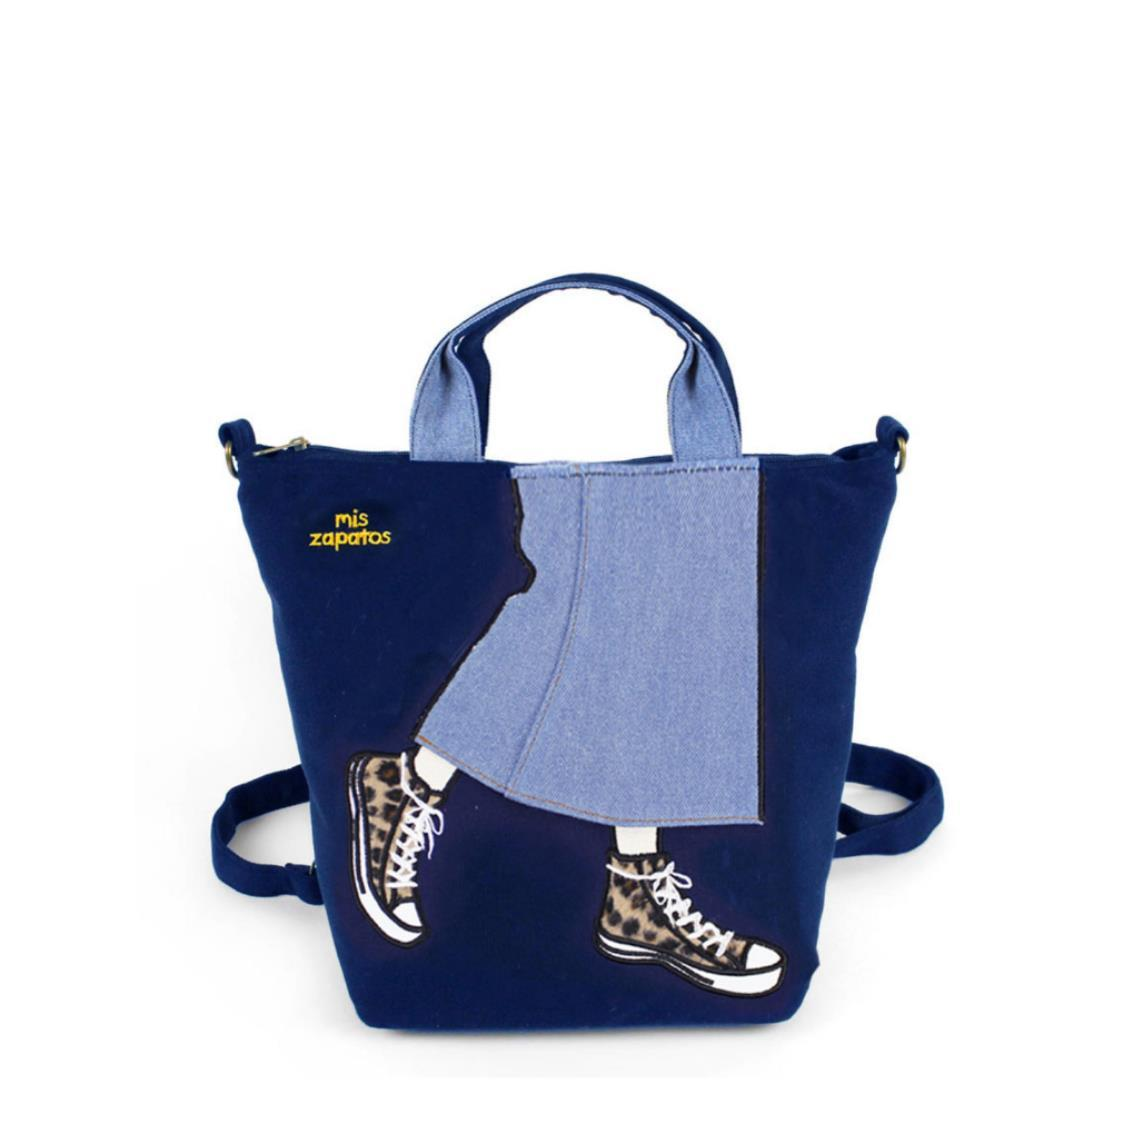 3-Way Use Jeans Skirt with Sneakers Handbag Navy